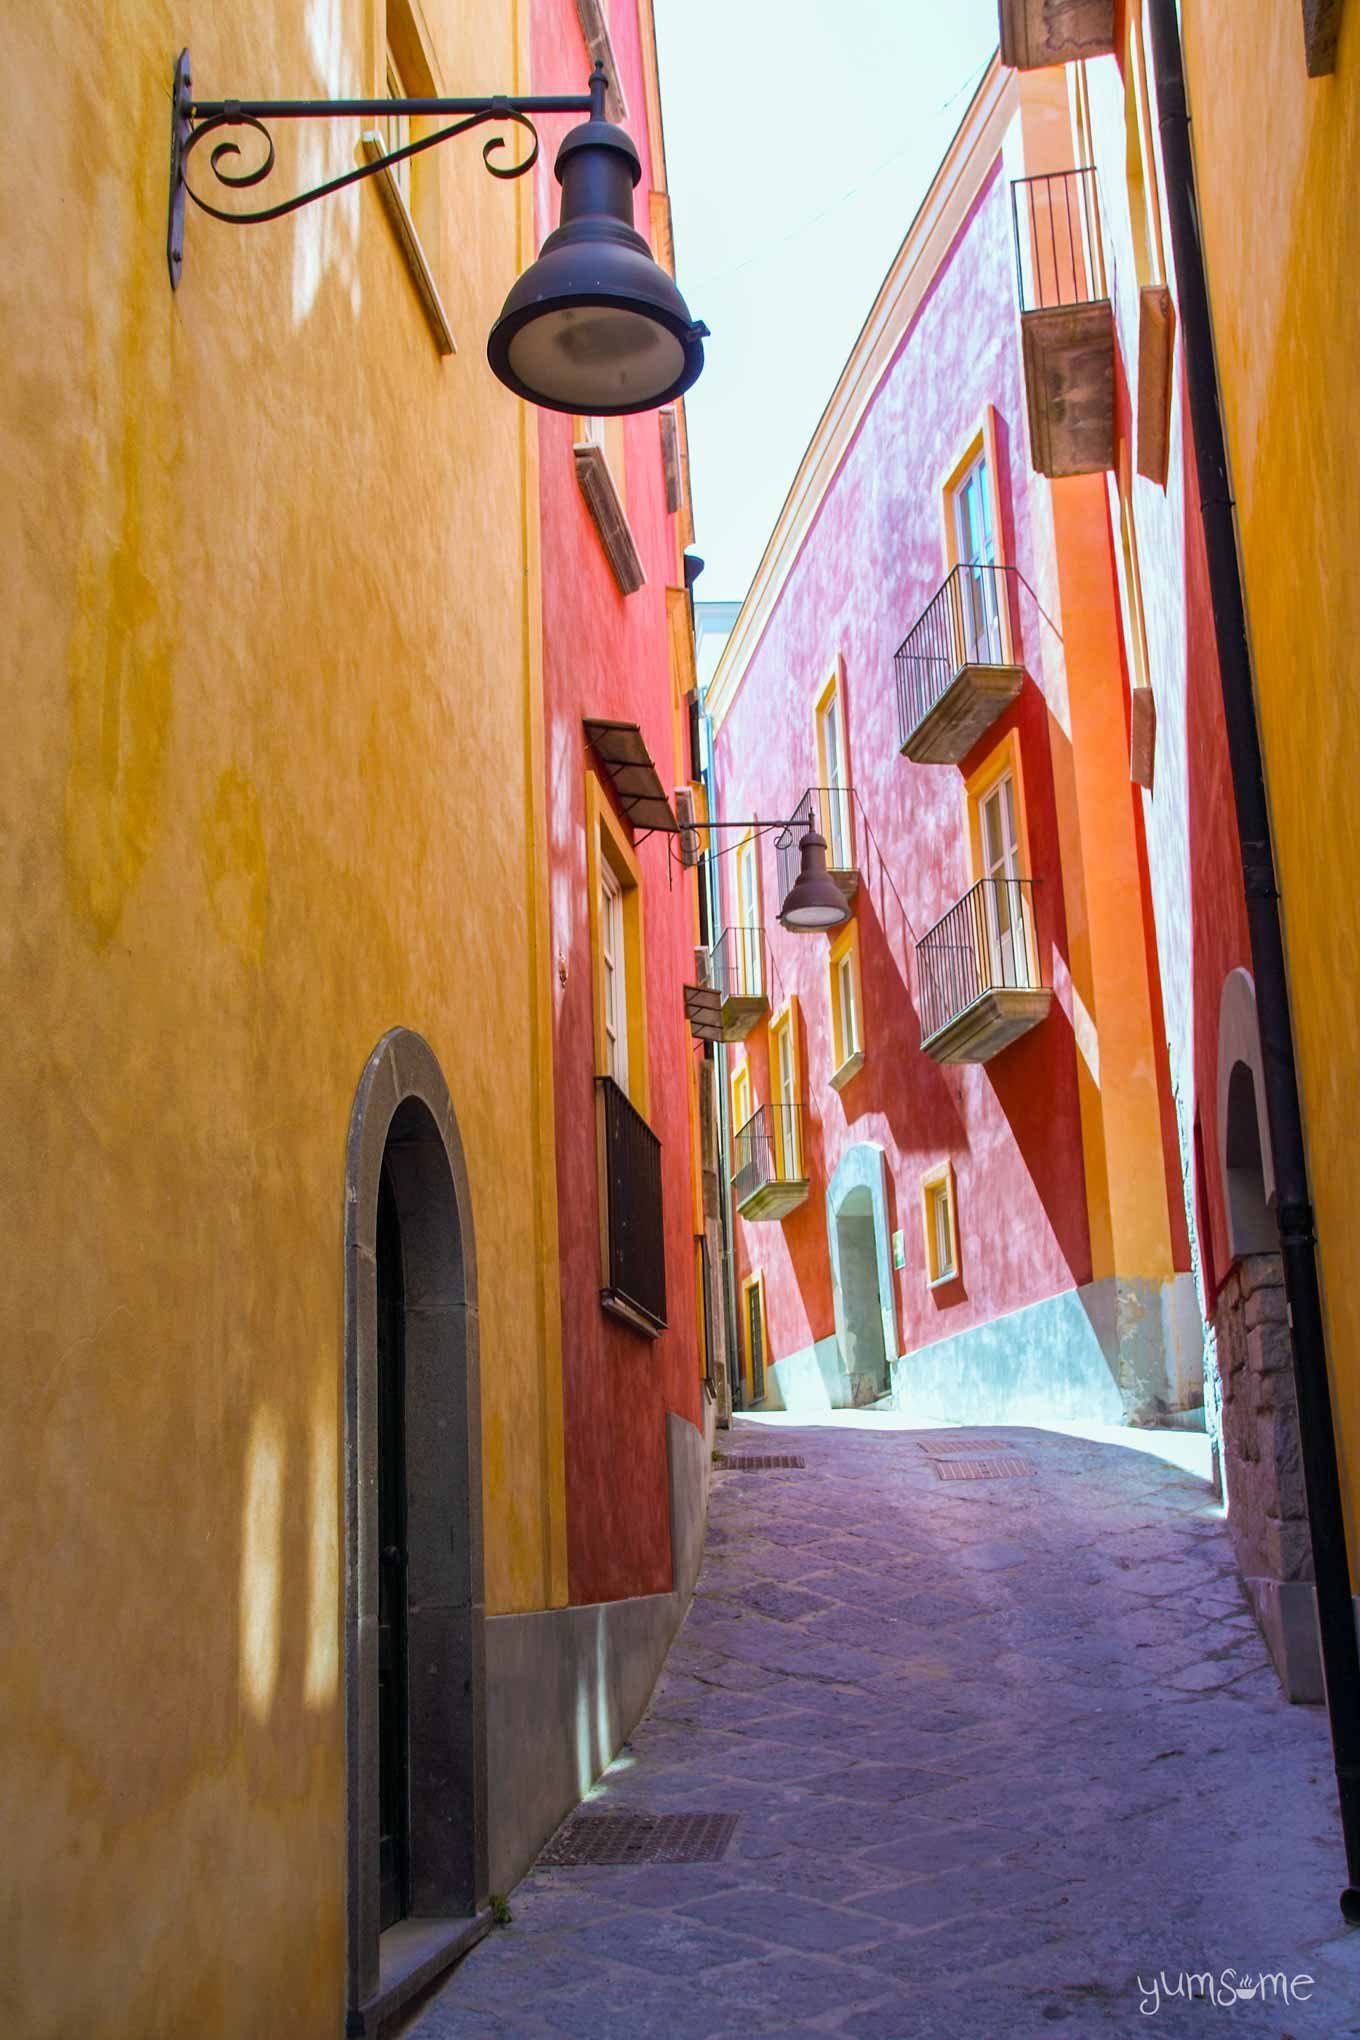 A colourful street in Pozzuoli.